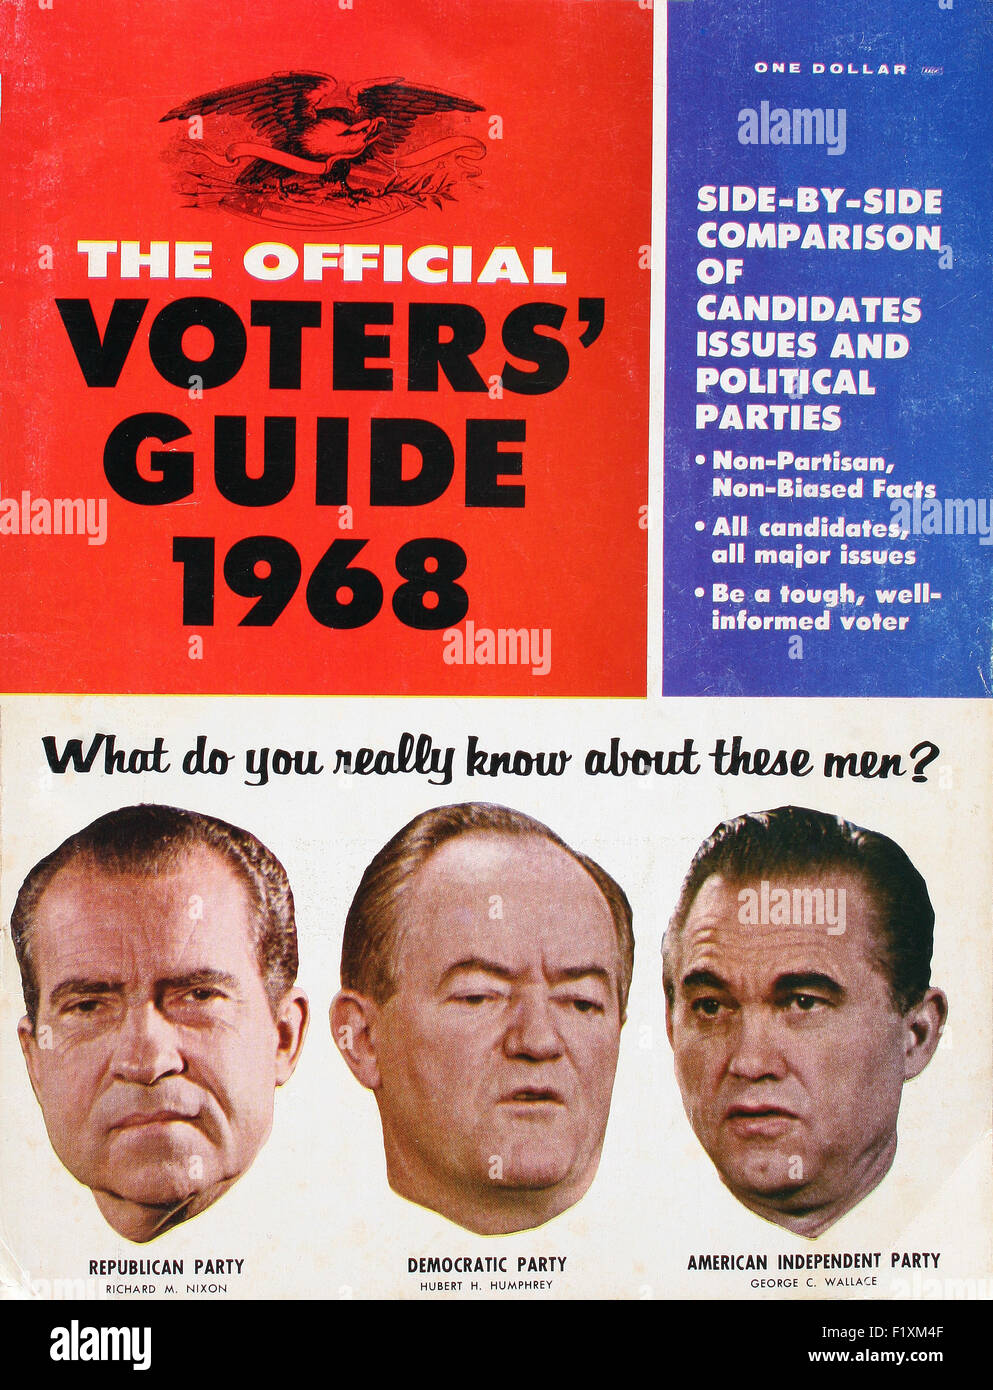 1968 U.S. Presidential Voters Guide showing portraits of Richard M. Nixon, Hubert H. Humphrey, and George C. Wallace - Stock Image